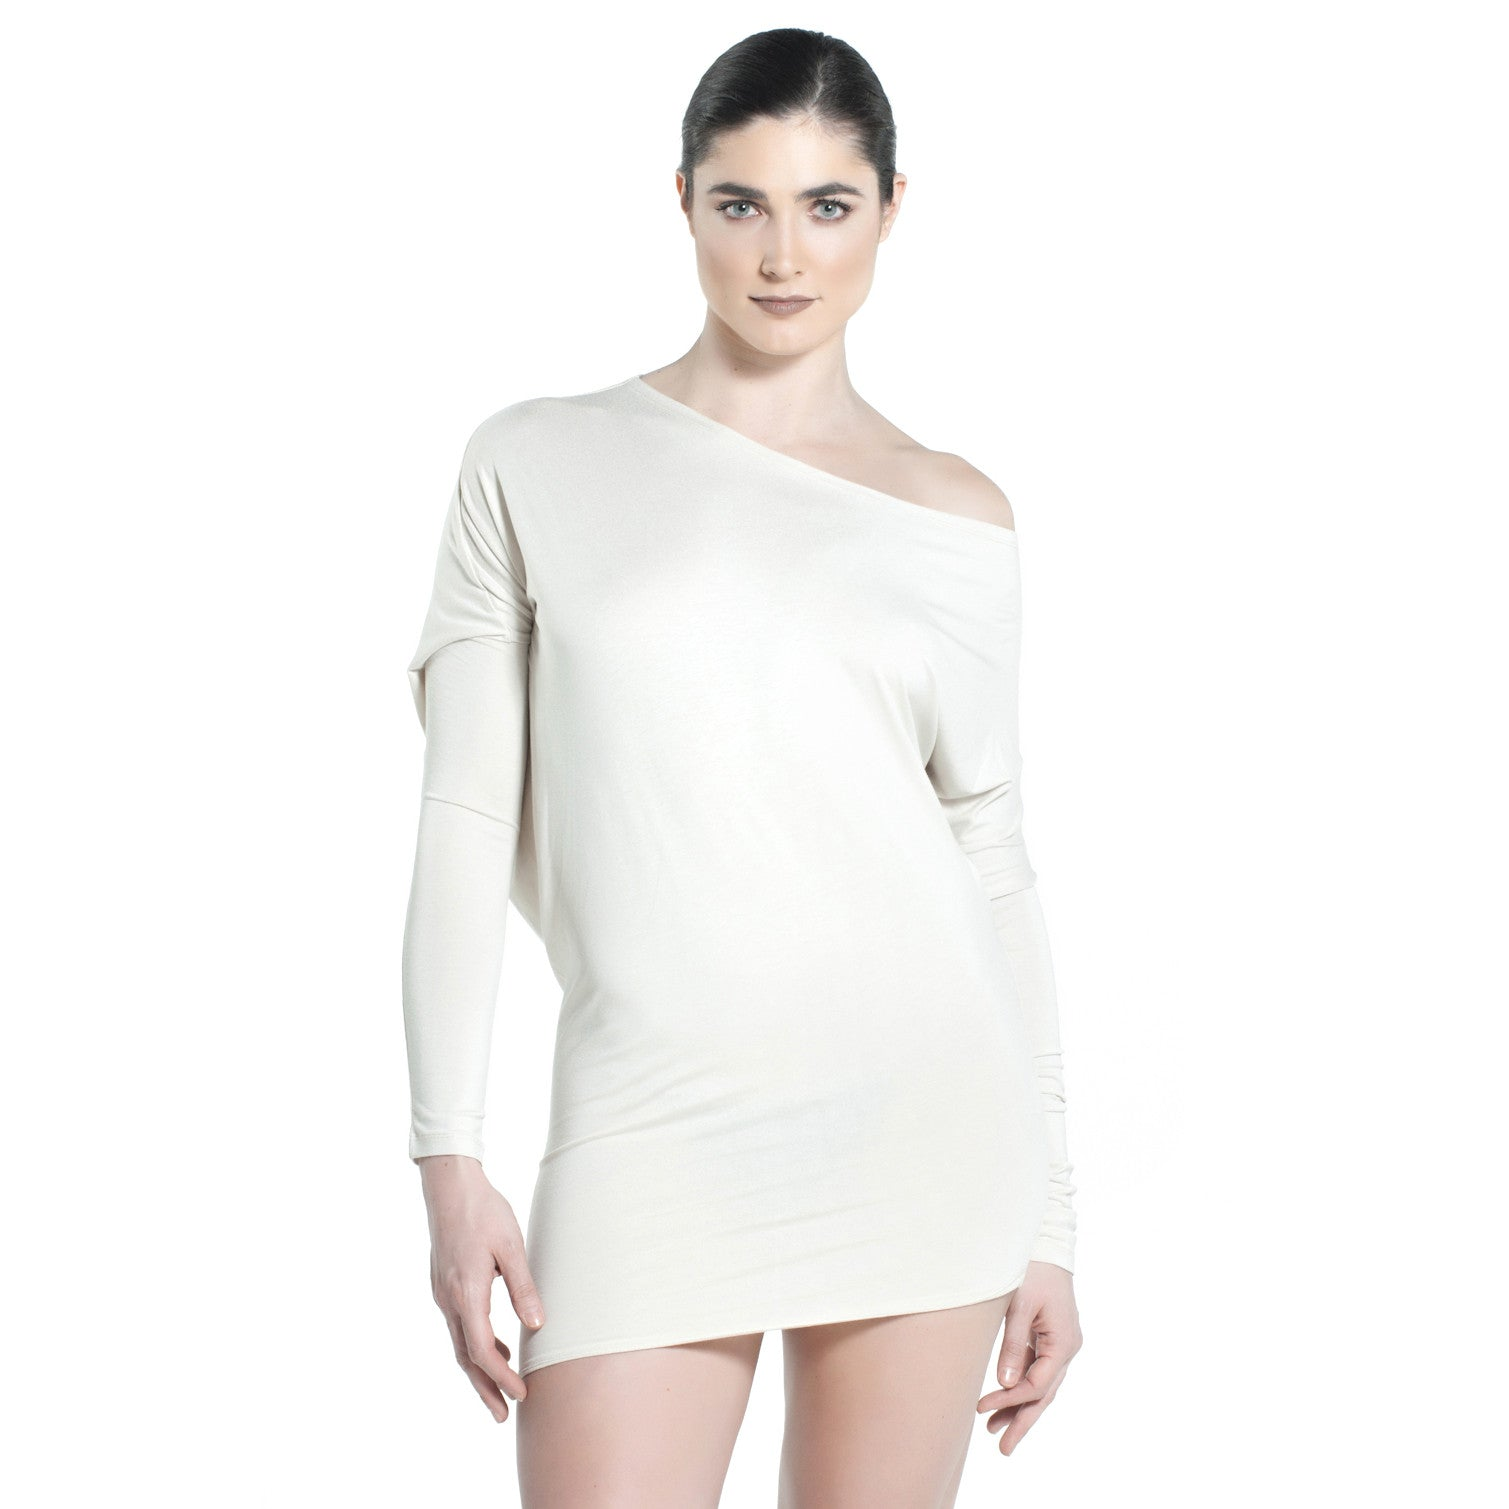 ASYMMETRICAL OVERSIZED JERSEY TOP IN LIGHT BEIGE